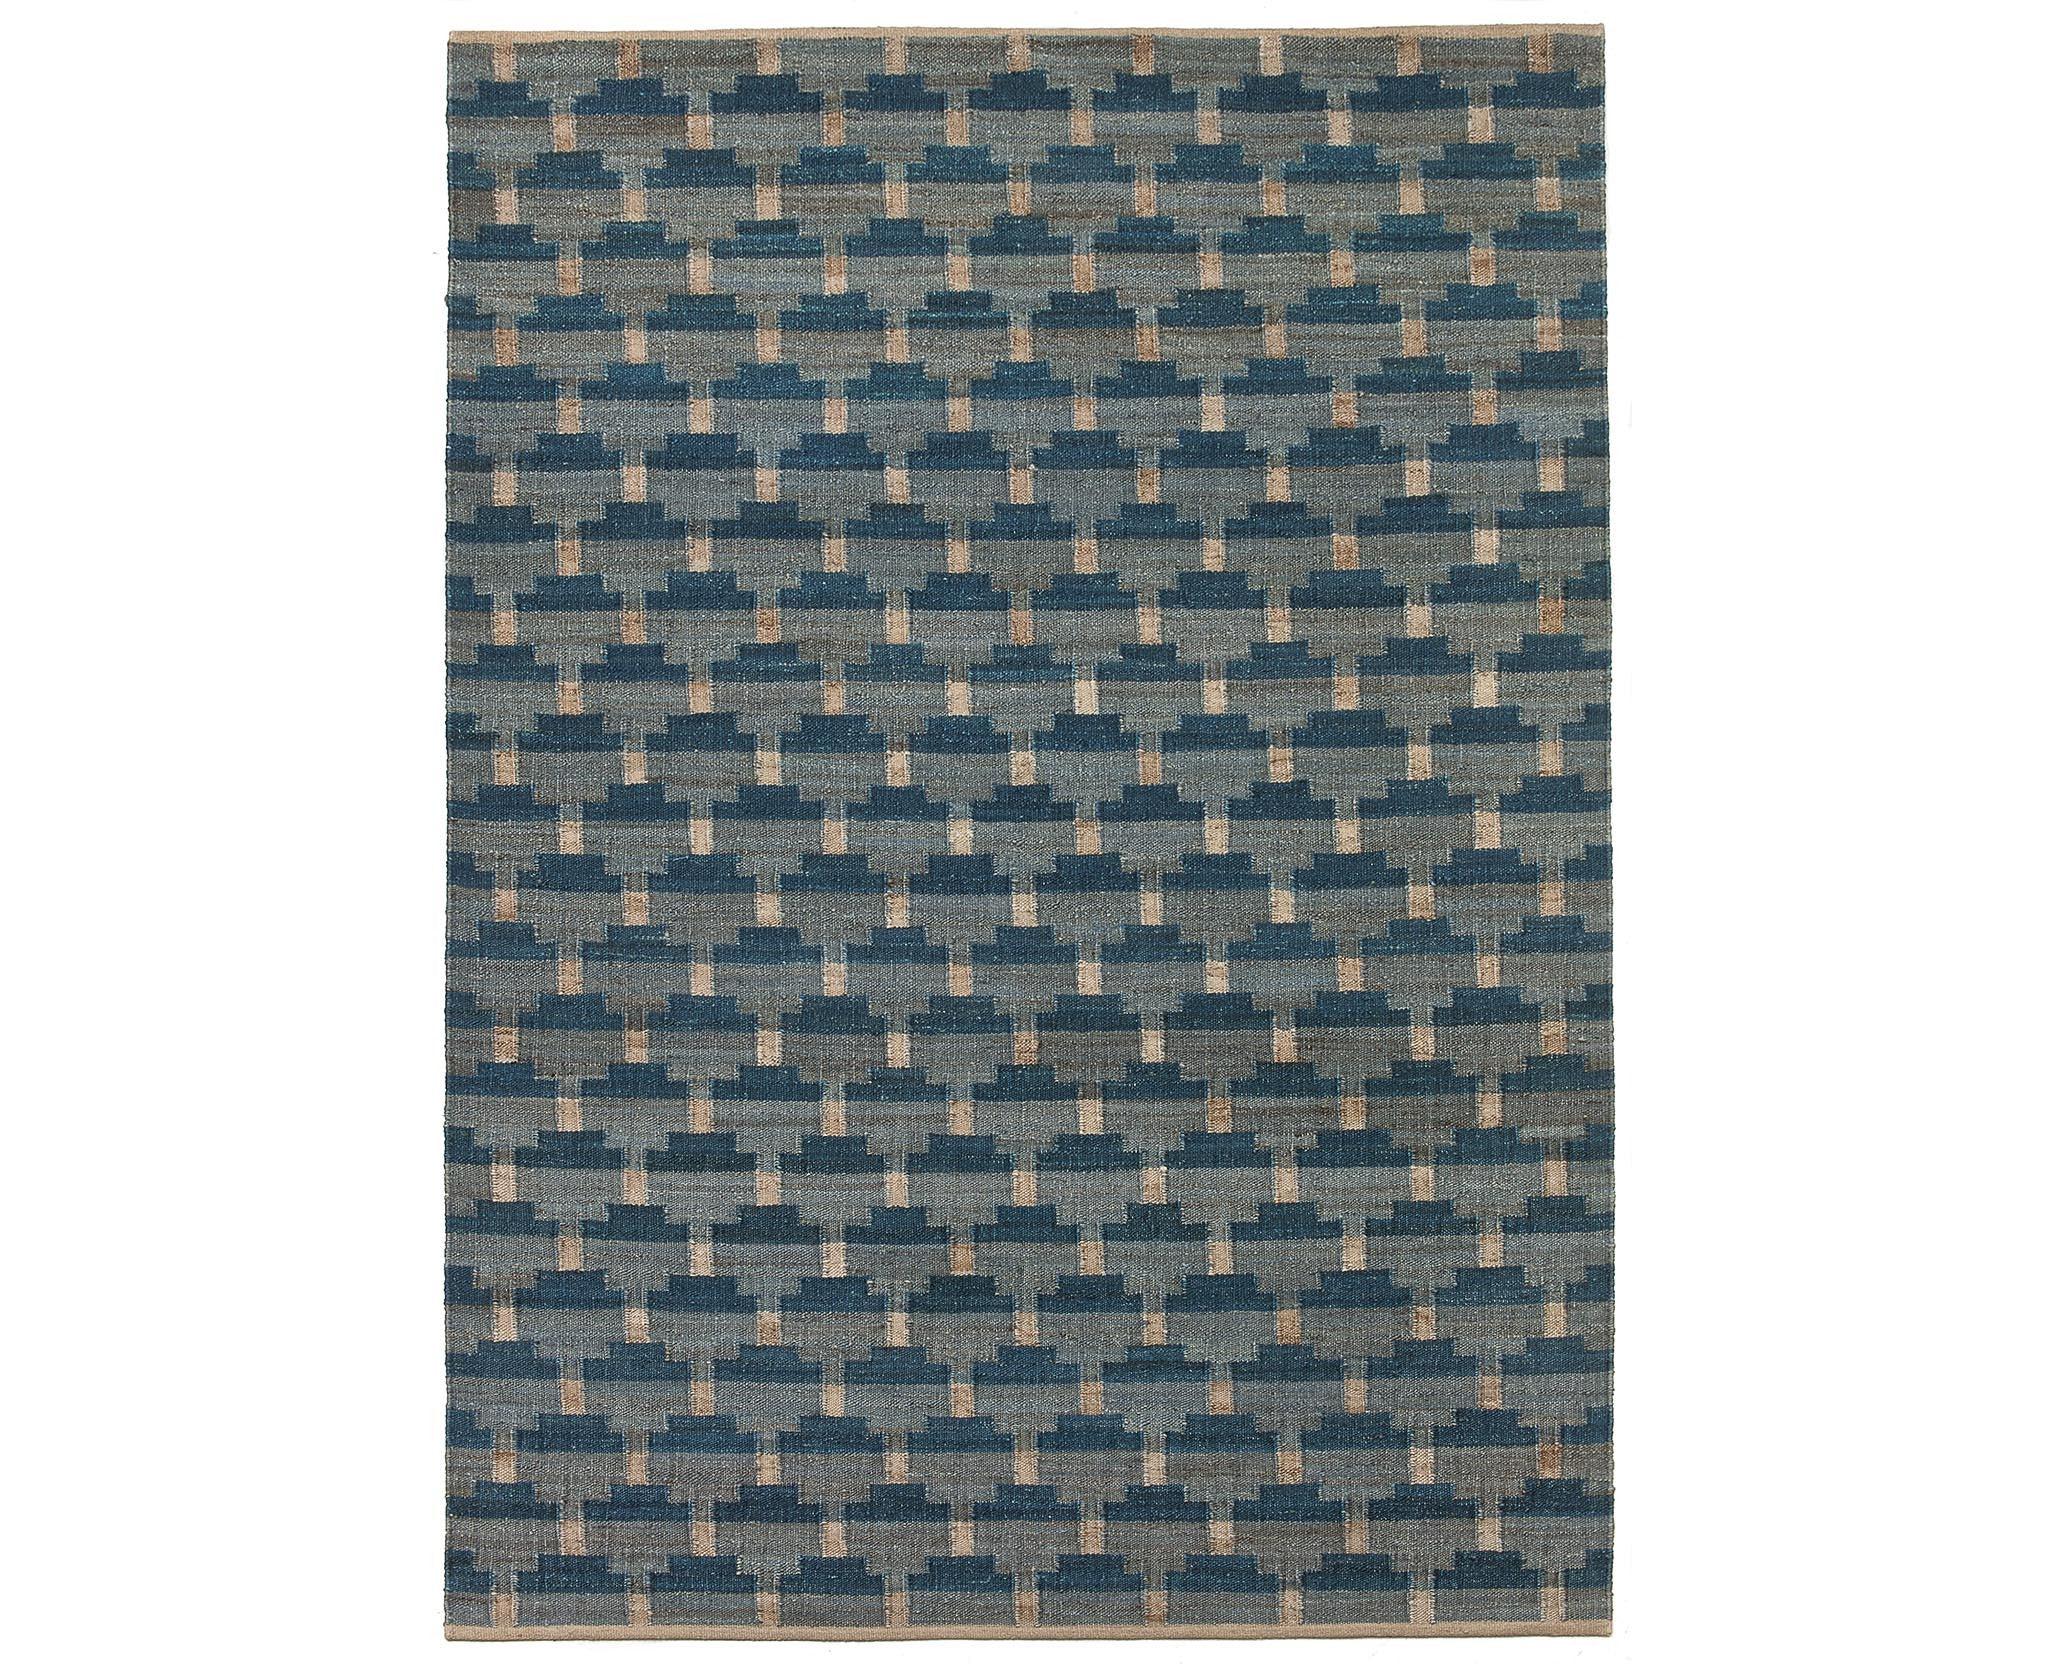 Confect Hemp Area Rug